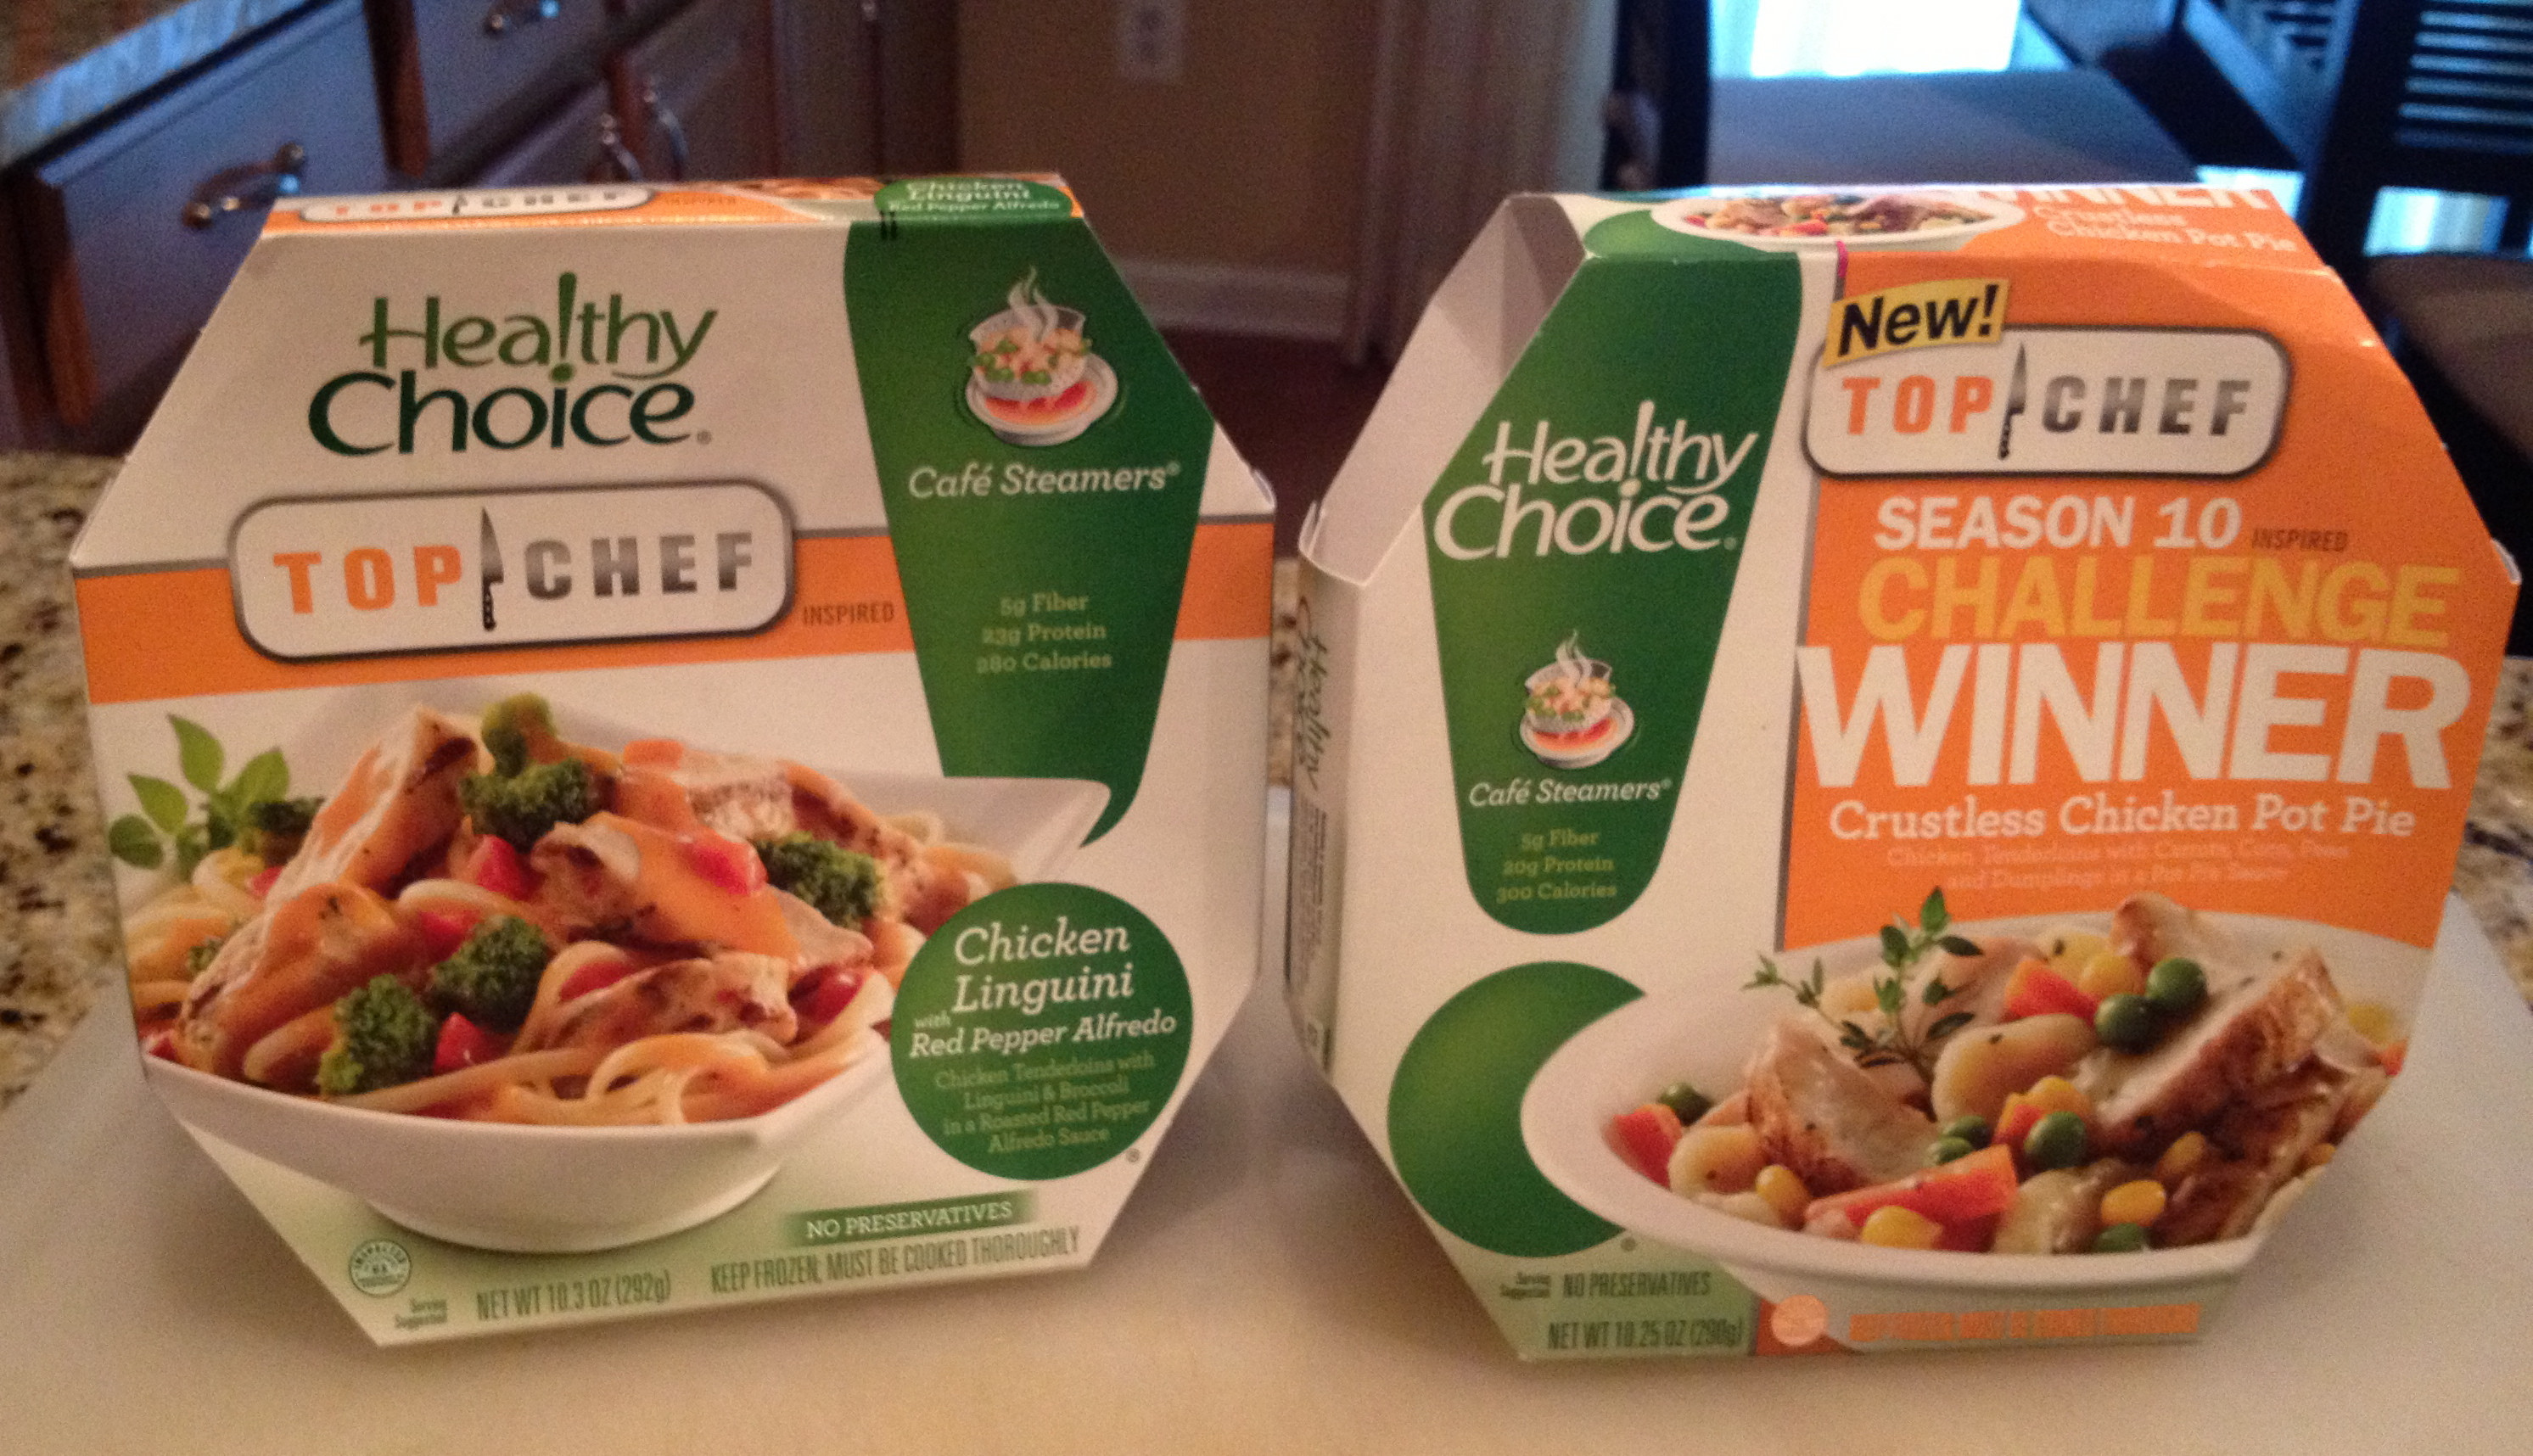 Healthy Choice Crustless Chicken Pot Pie  It s Steamy Outside But I m Cool Tasting Frozen Foods A